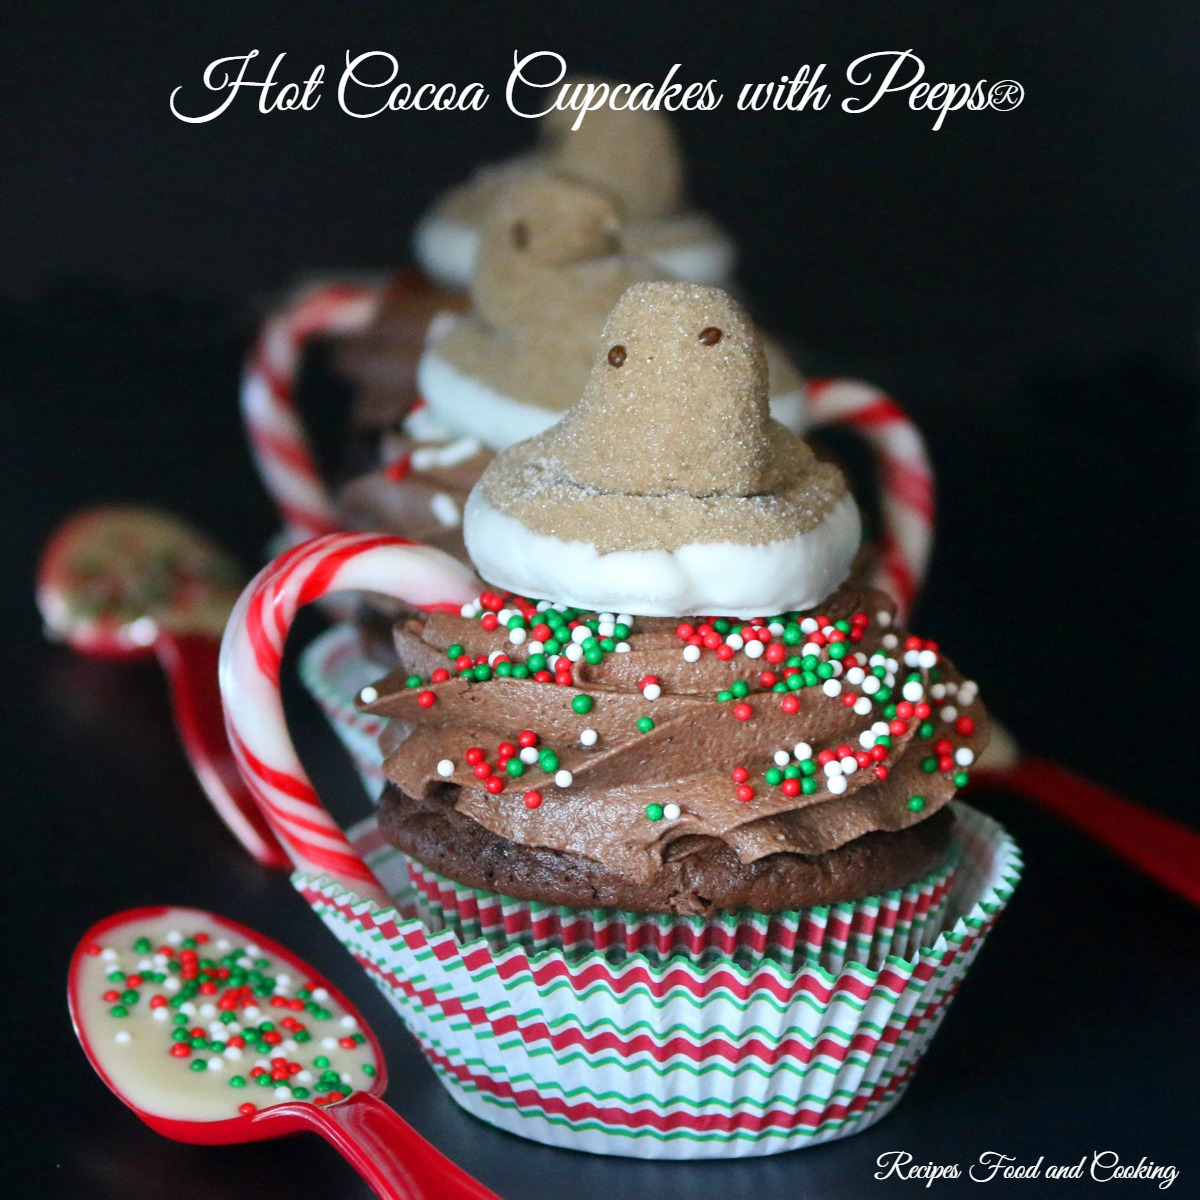 Hot Cocoa Cupcakes with Peeps®